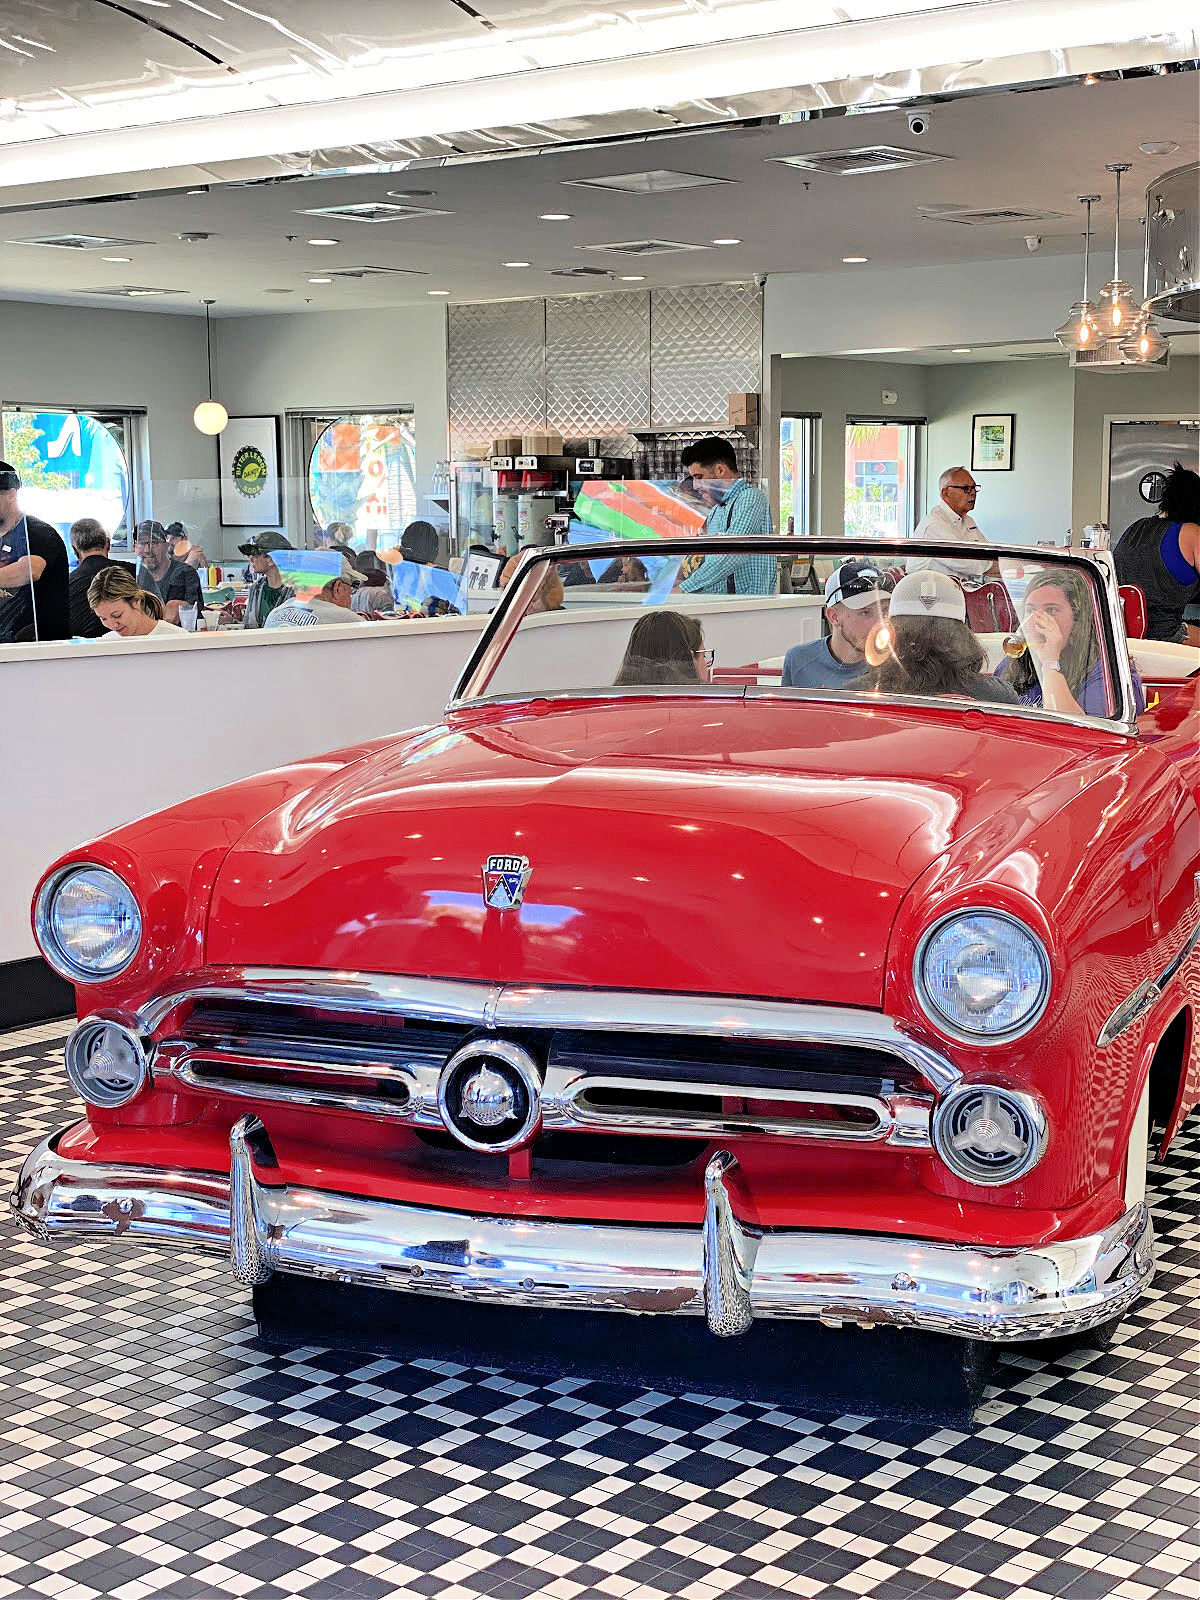 Antique red car being used as a dining booth.